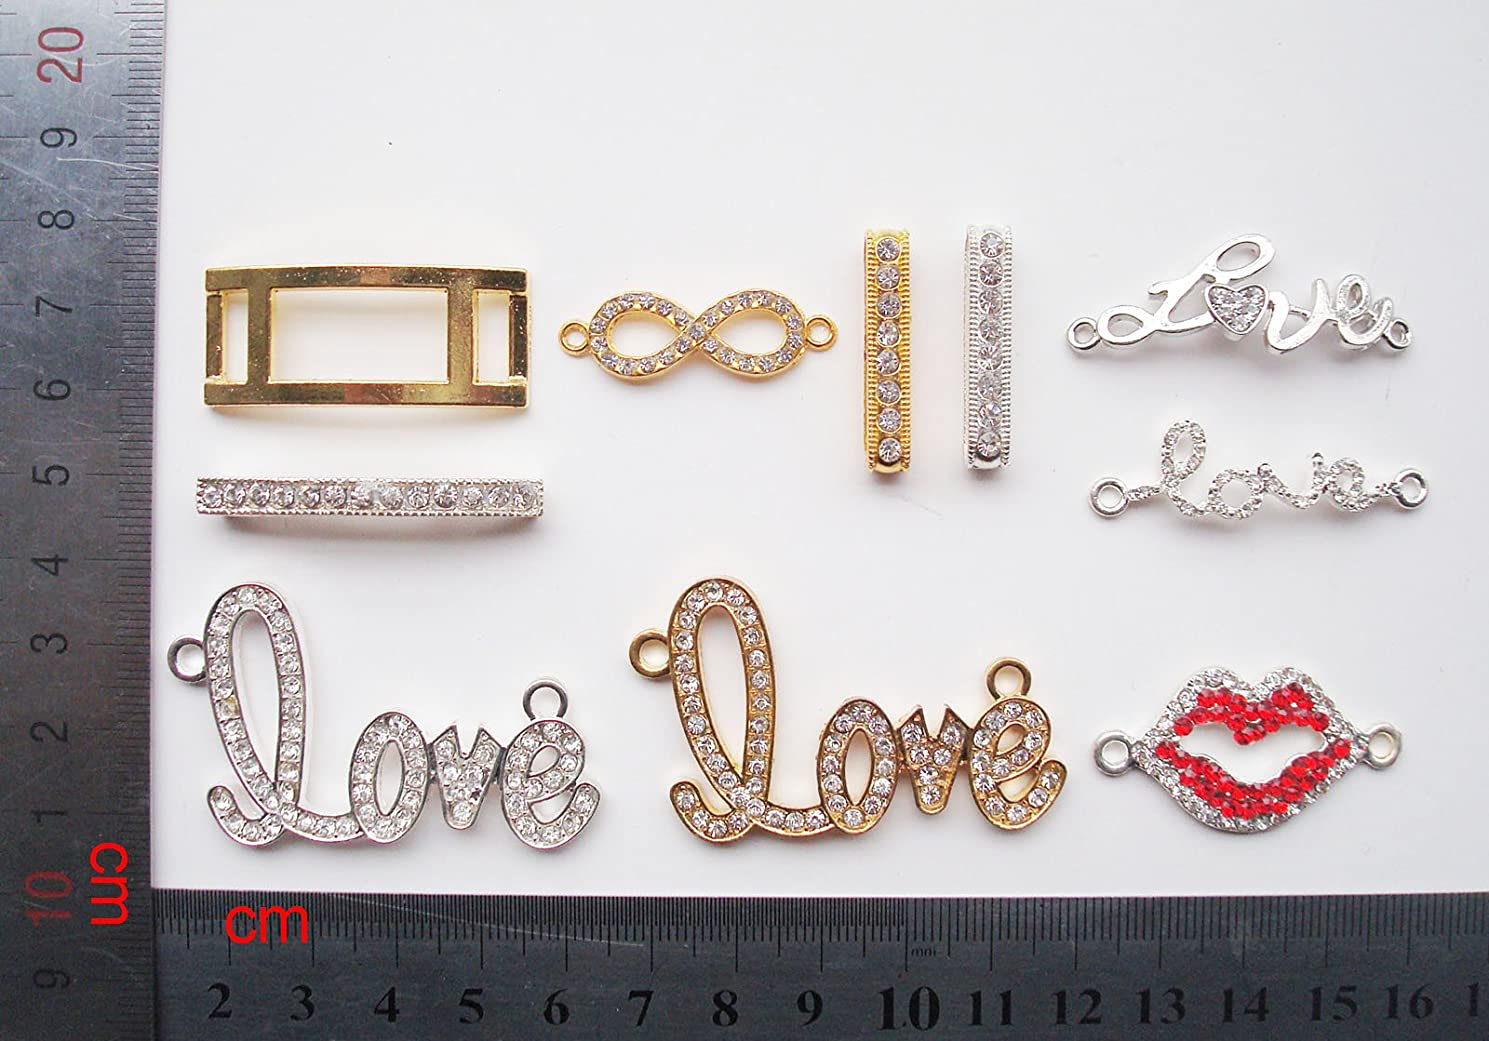 5Afashion Mixed 10pcs Cross Metal Pave Czech Crystals Sideways Connector Loose Alloy Beads for Jewelry Necklace Pendants and Bracelet Charms (2)